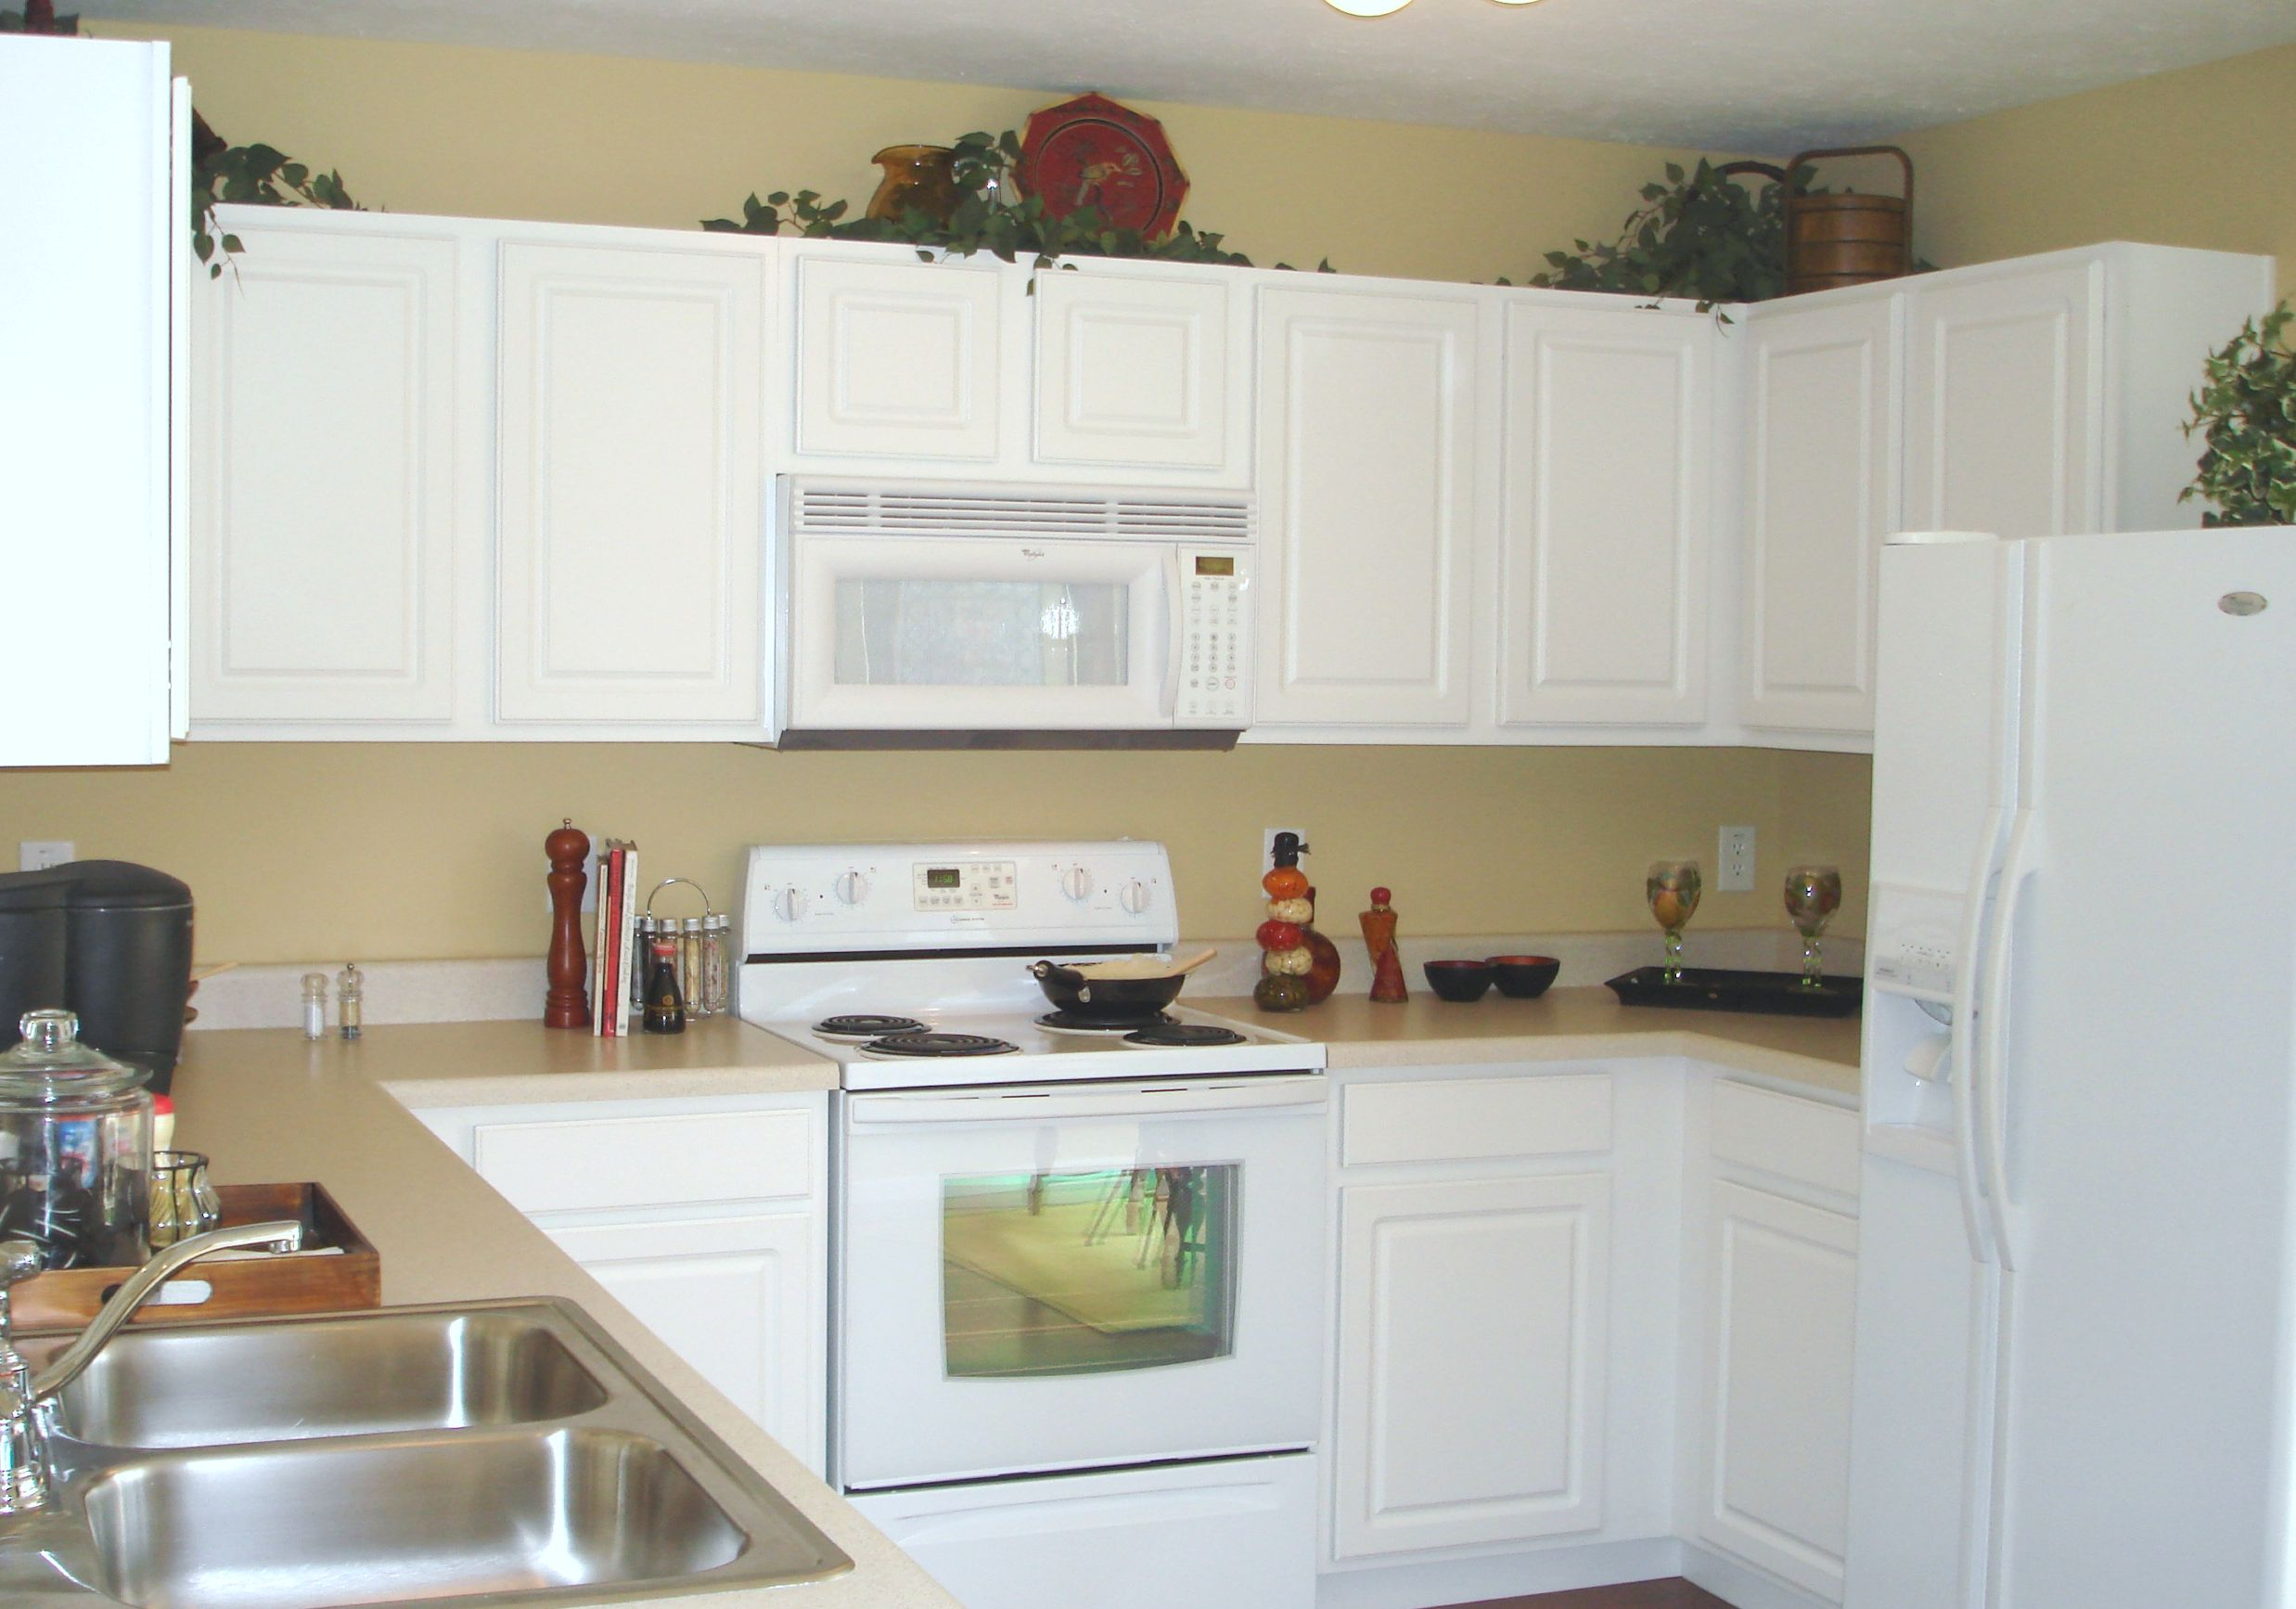 Give Your Kitchen a Facelift: Stain Your Kitchen Cabinets - OurKidsMom